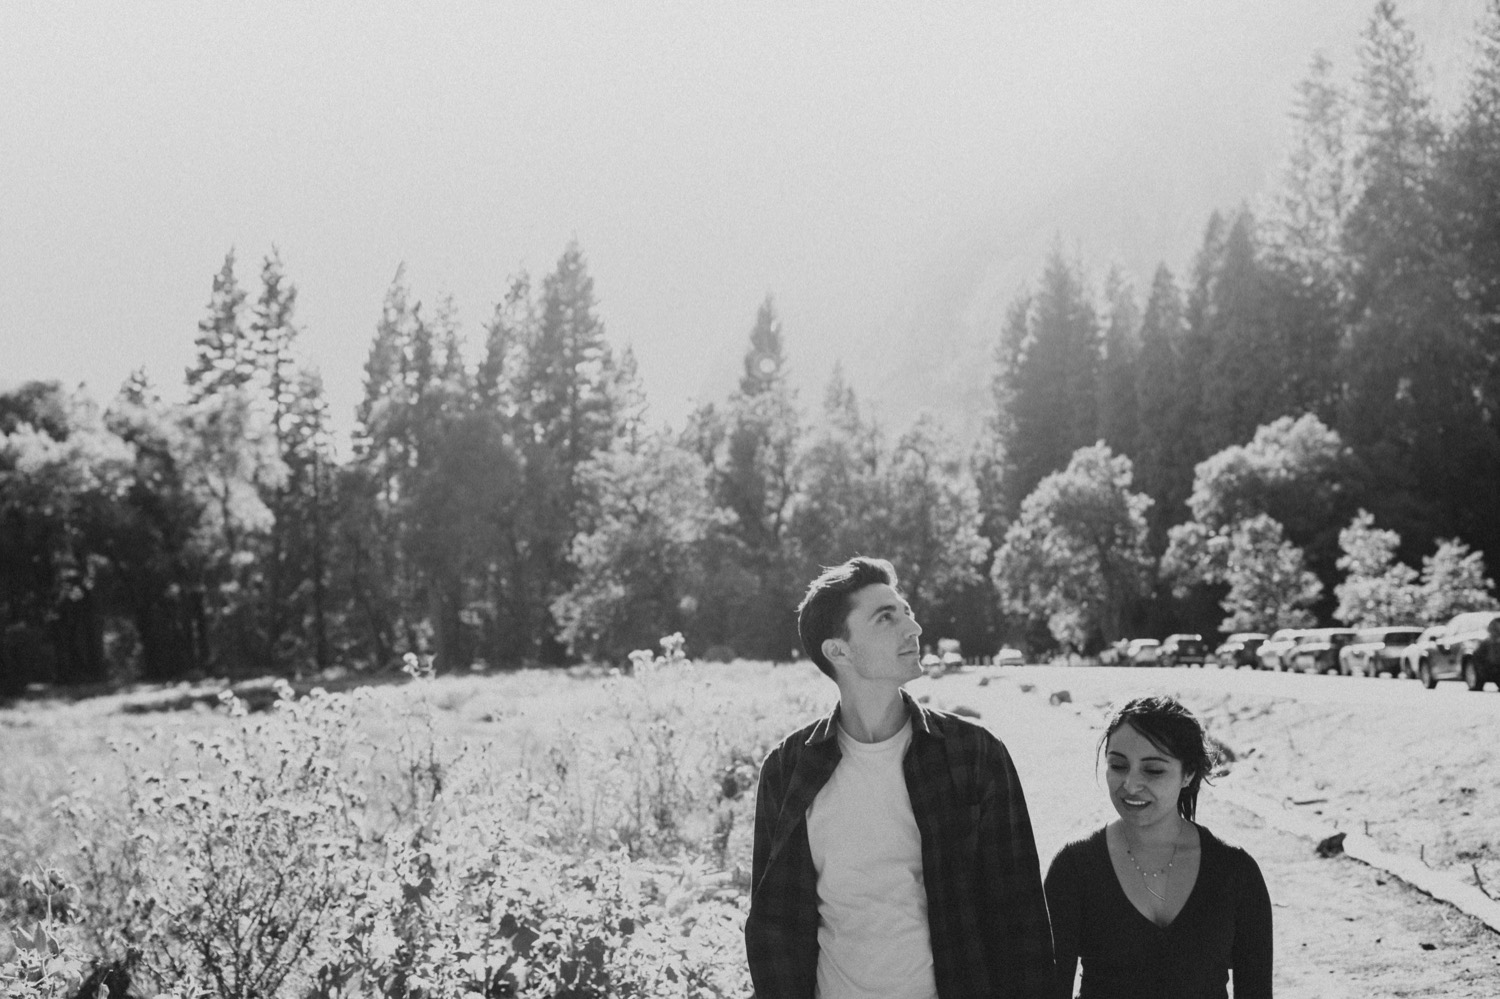 06_Yosemite-National-Park-Engagement-Session-Emily-Magers-Photography10.jpg